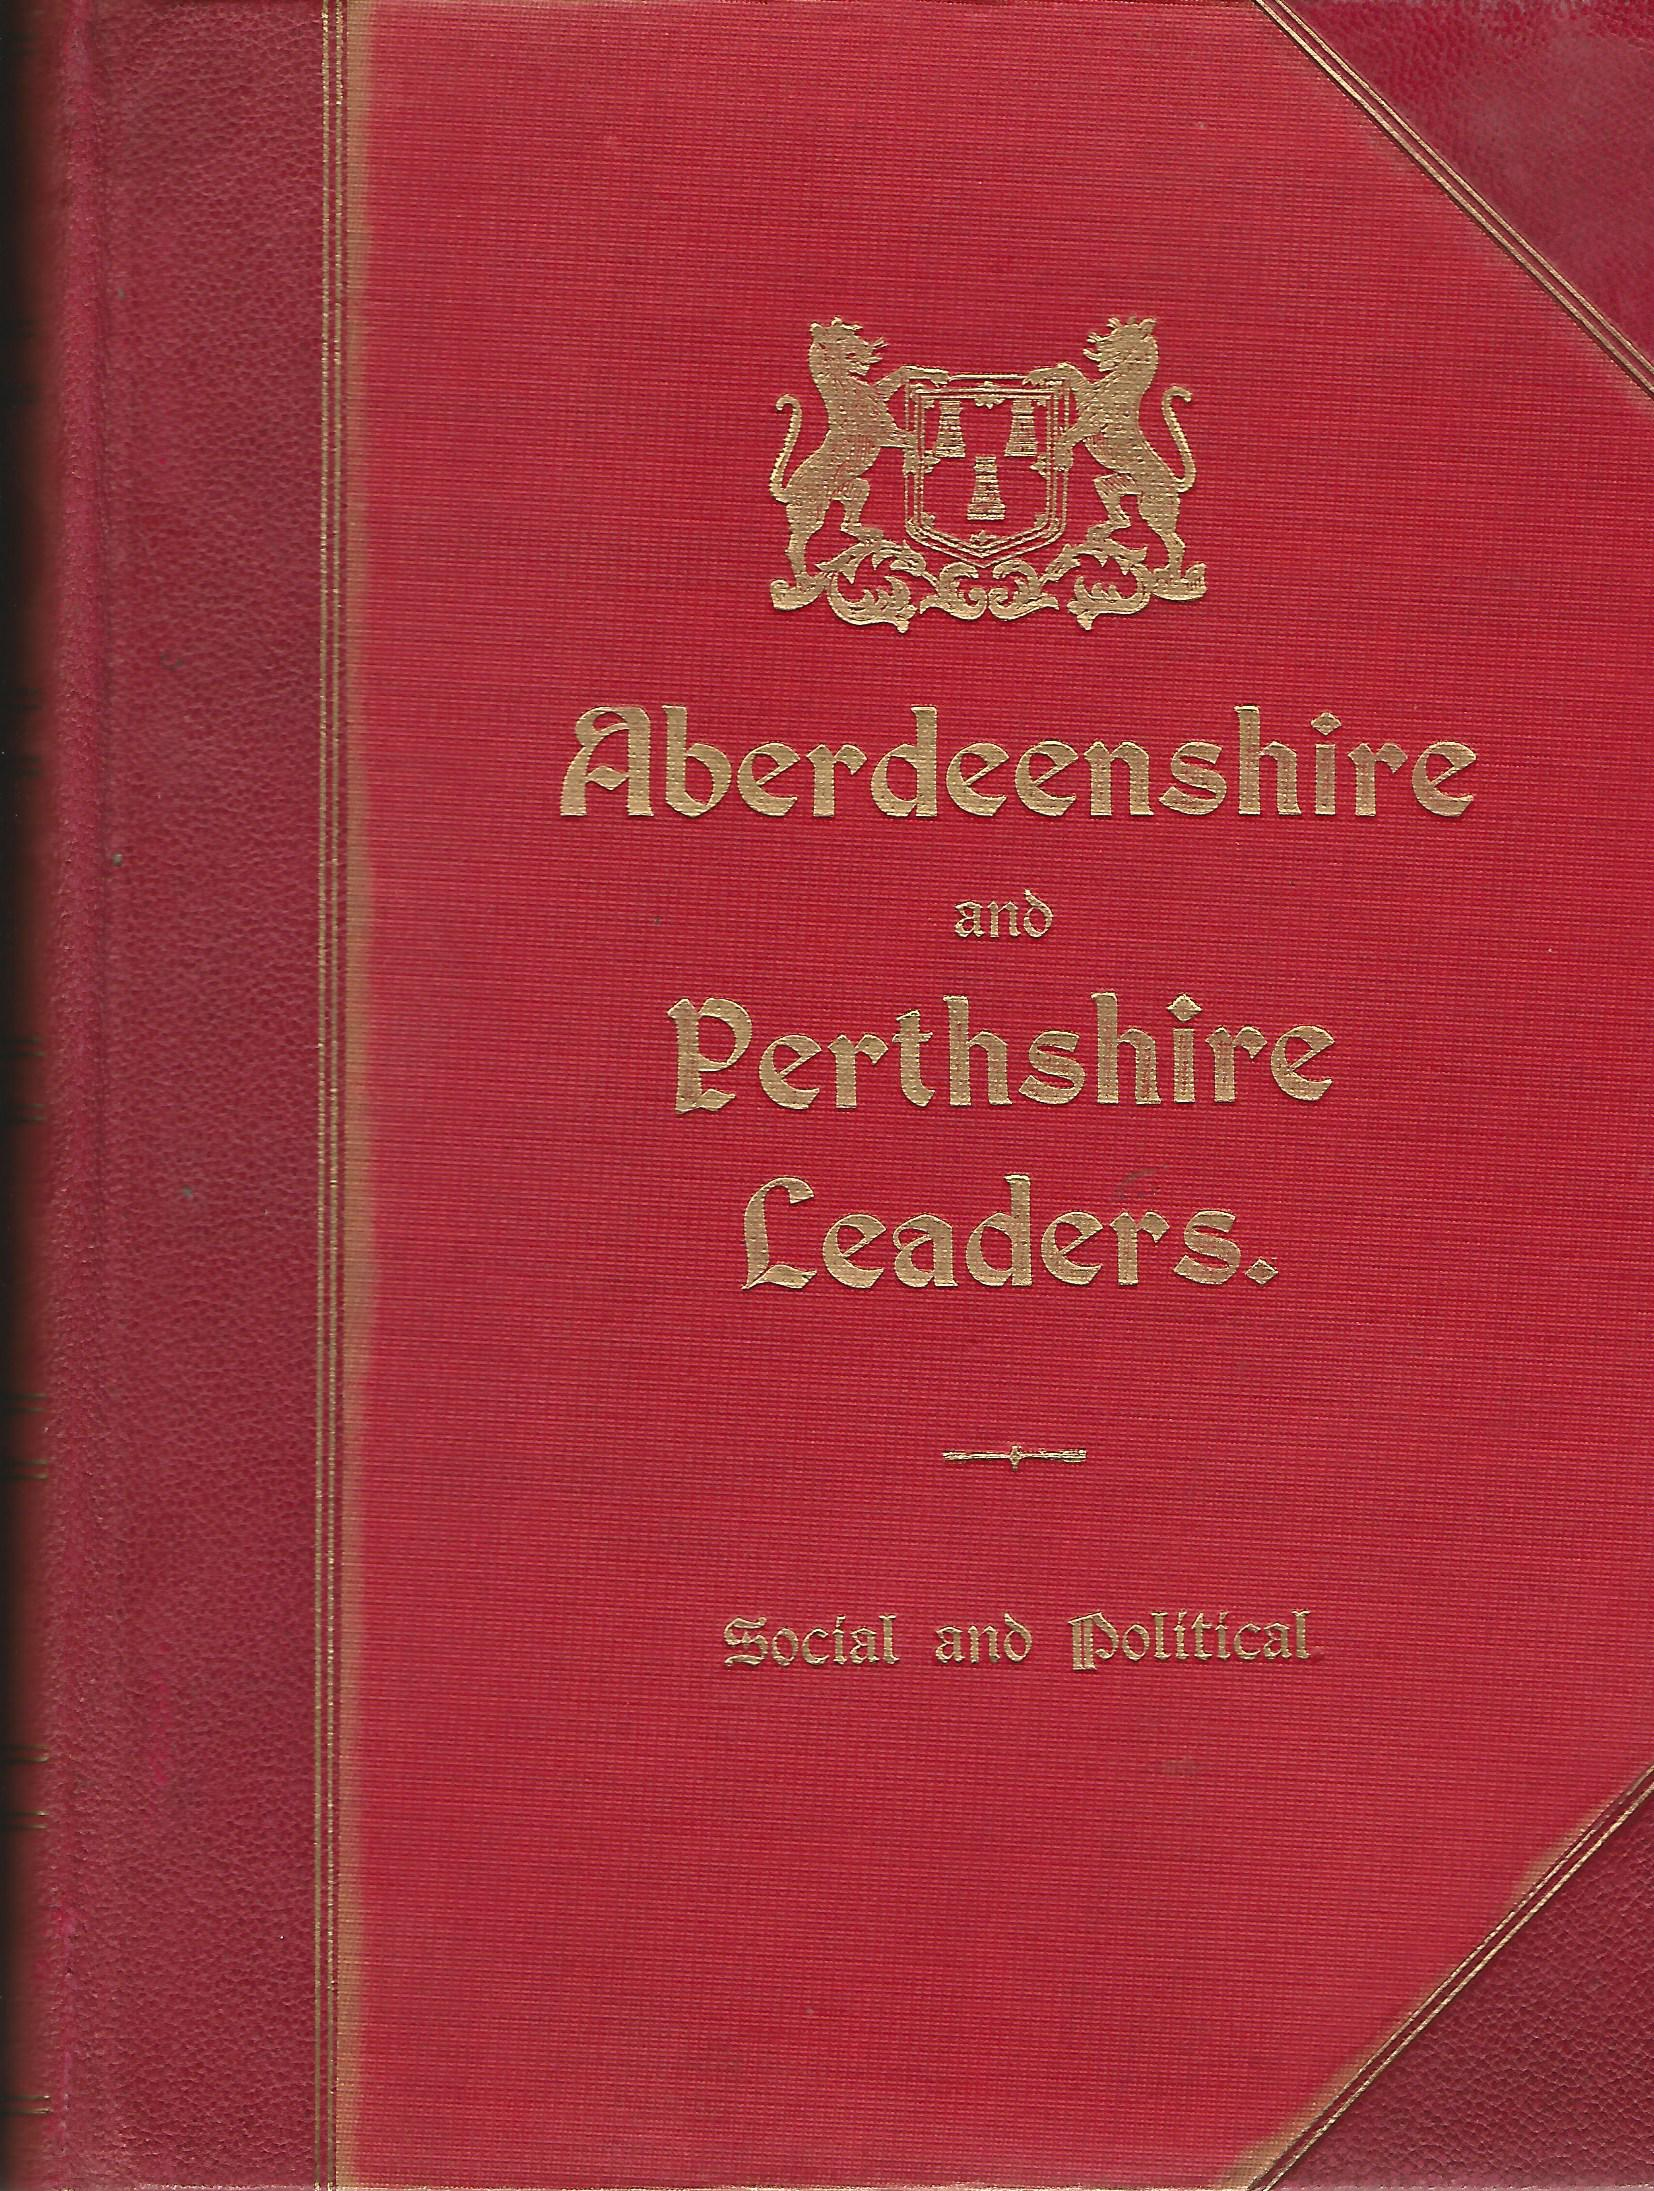 Image for Aberdeenshire and Perthshire Leaders: Social and Political.